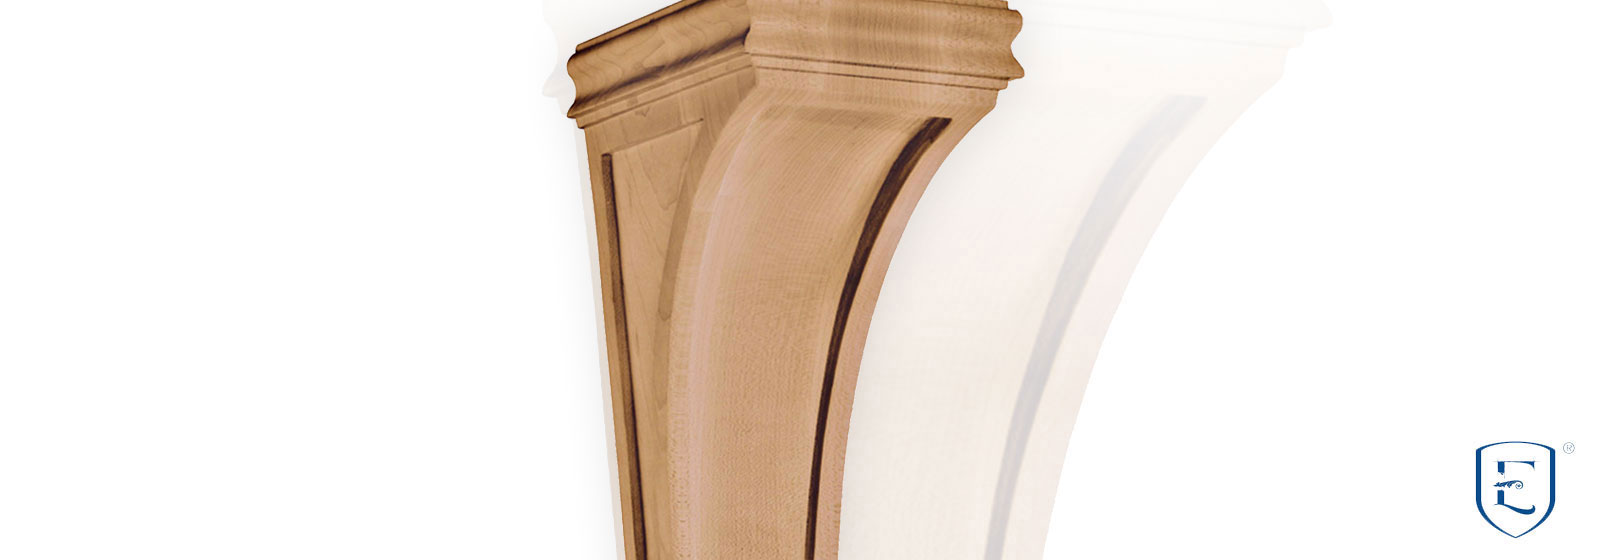 Arts And Crafts Corbels: Enkeboll Arts And Crafts Wood Corbels